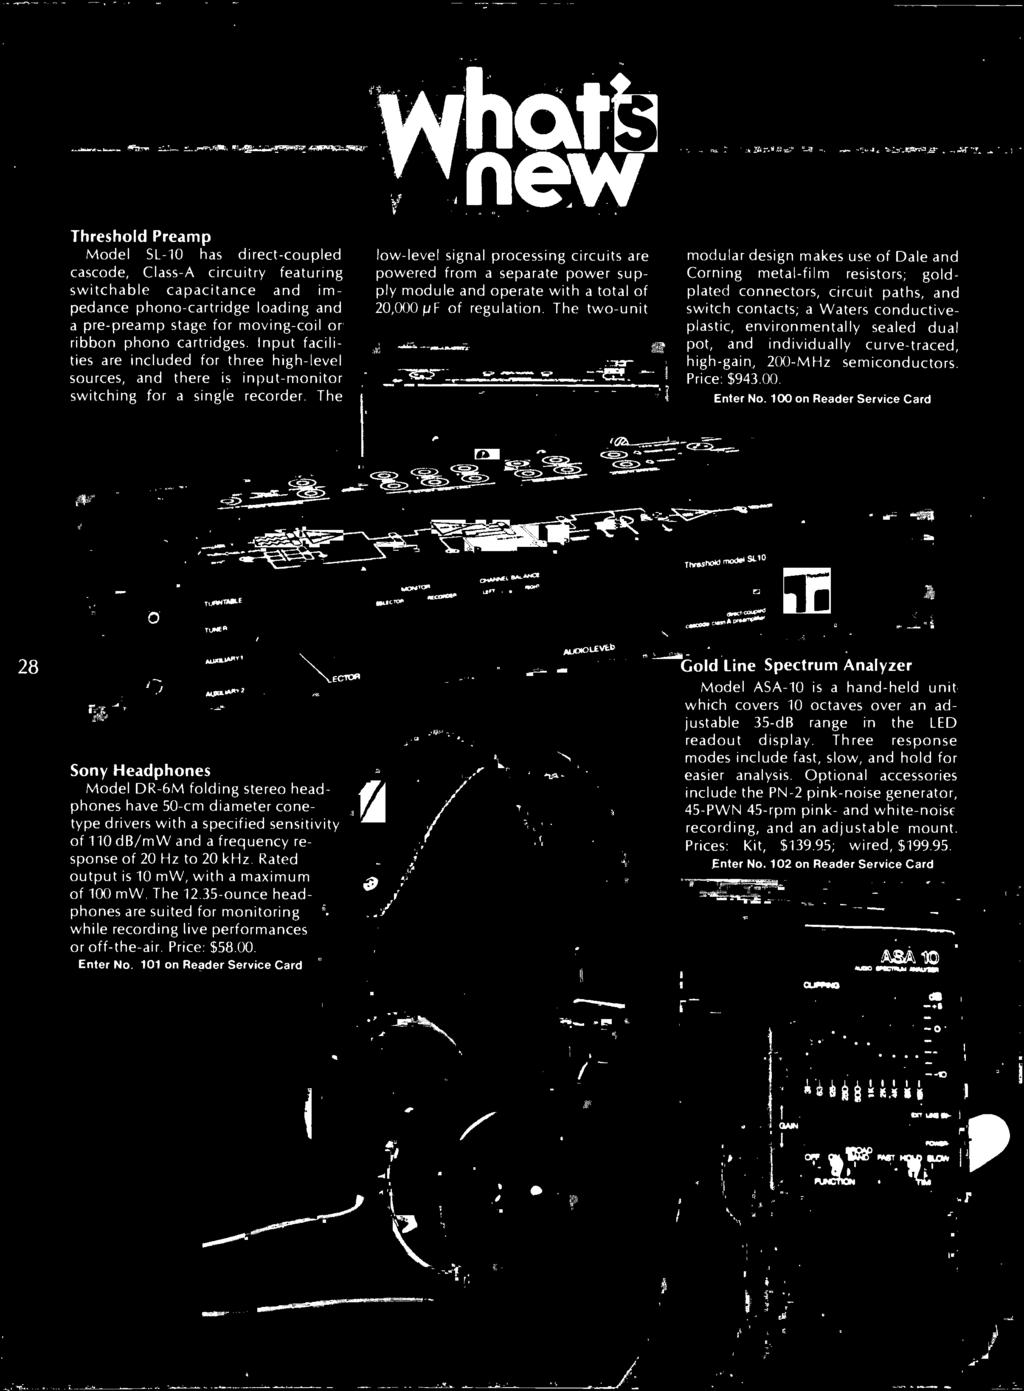 The Authoritative Magazine About High Fidelity December 1979 30hz To 90hz Adj Pa Driver Pot And Individually Curve Traced Gain 200 Mhz Semiconductors